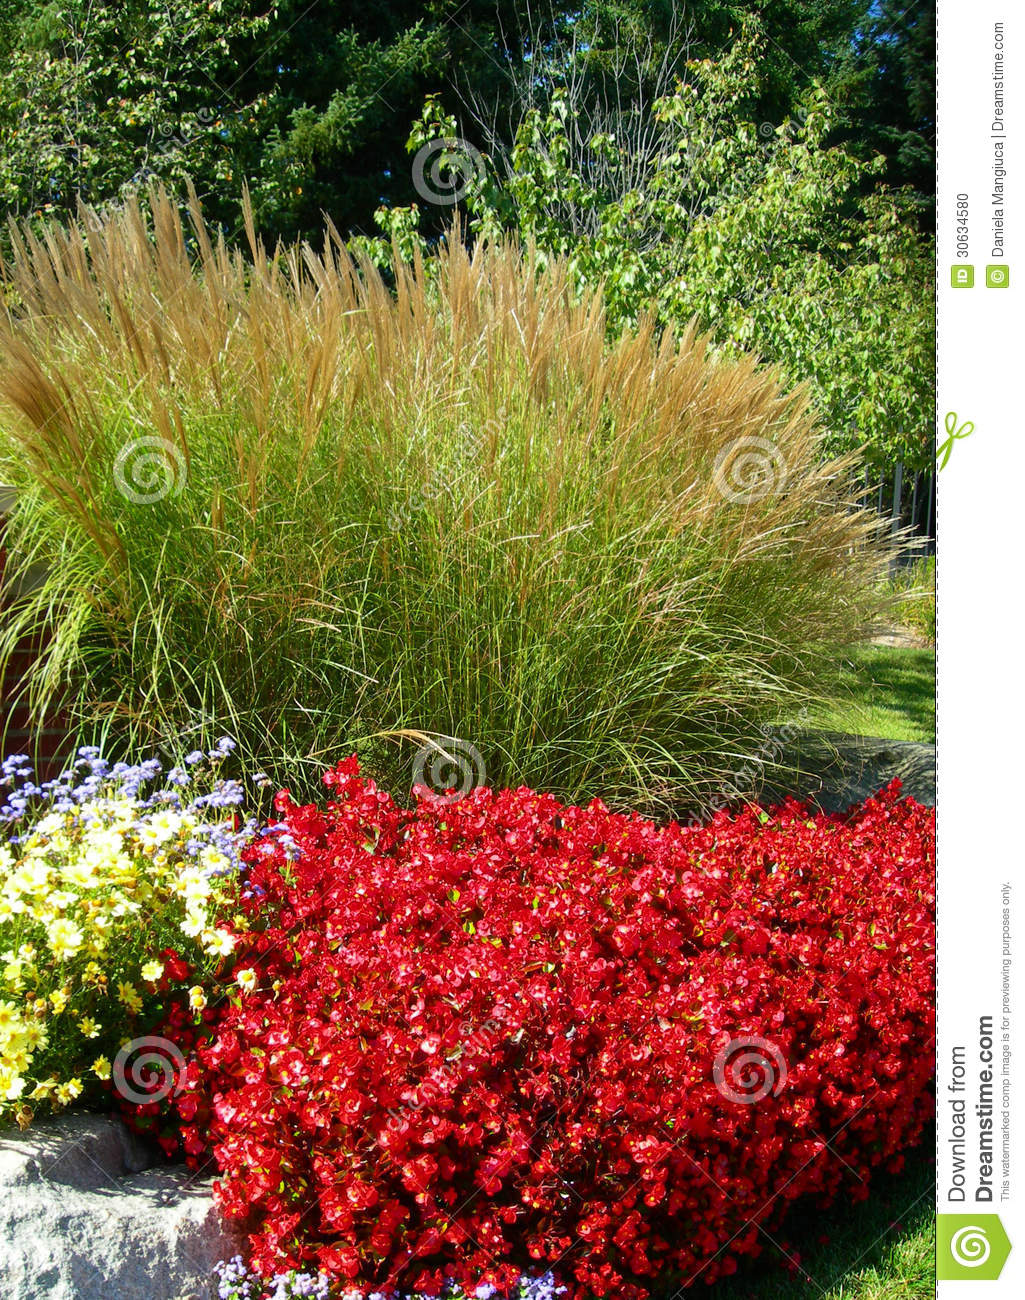 Ornamental green grass and red flower beds stock photo for Ornamental grass bed design